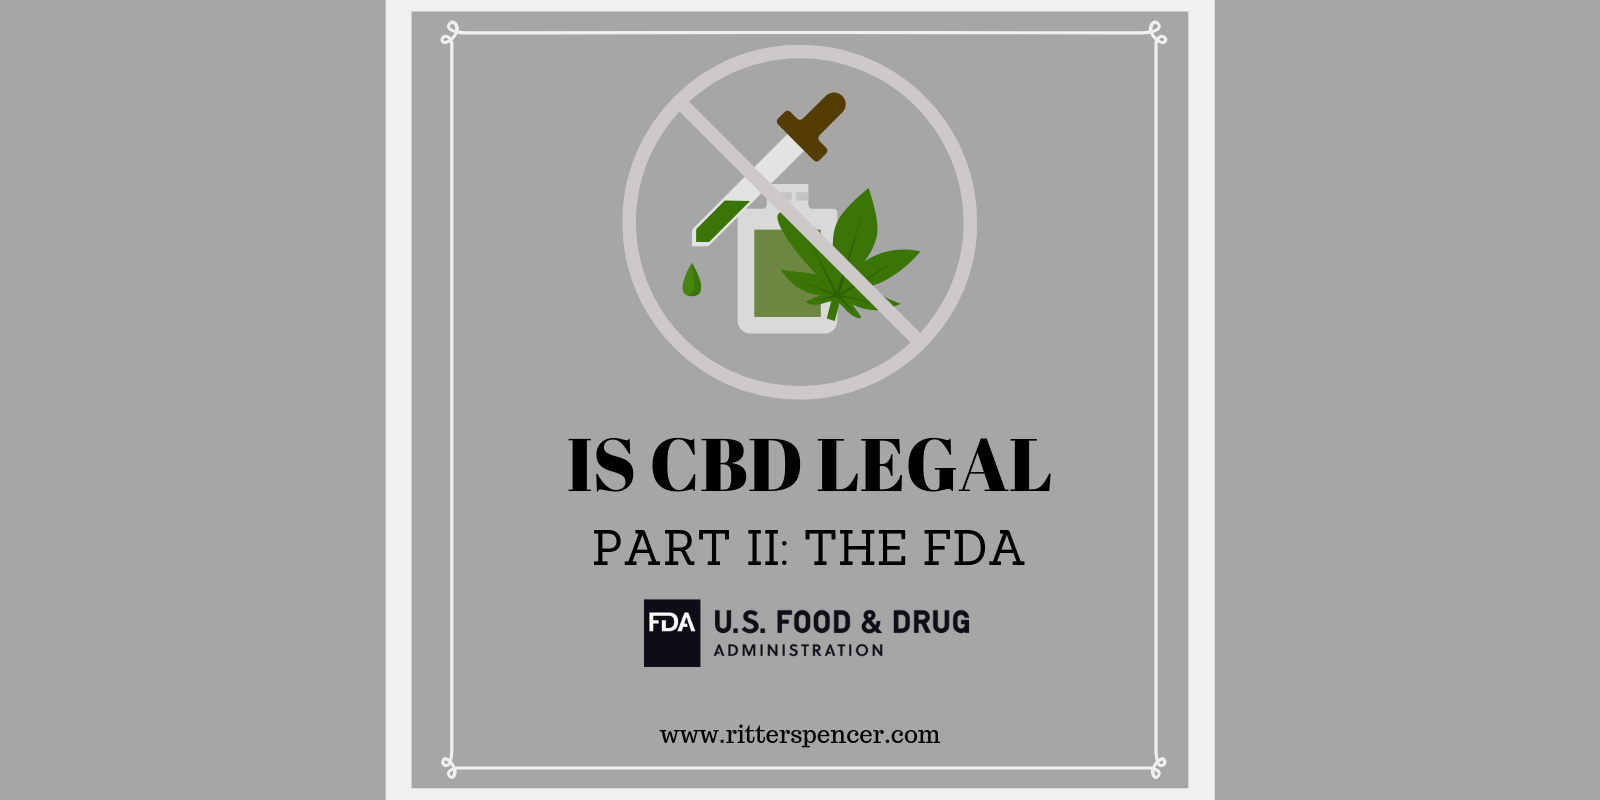 Is CBD Legal? Part II: The FDA